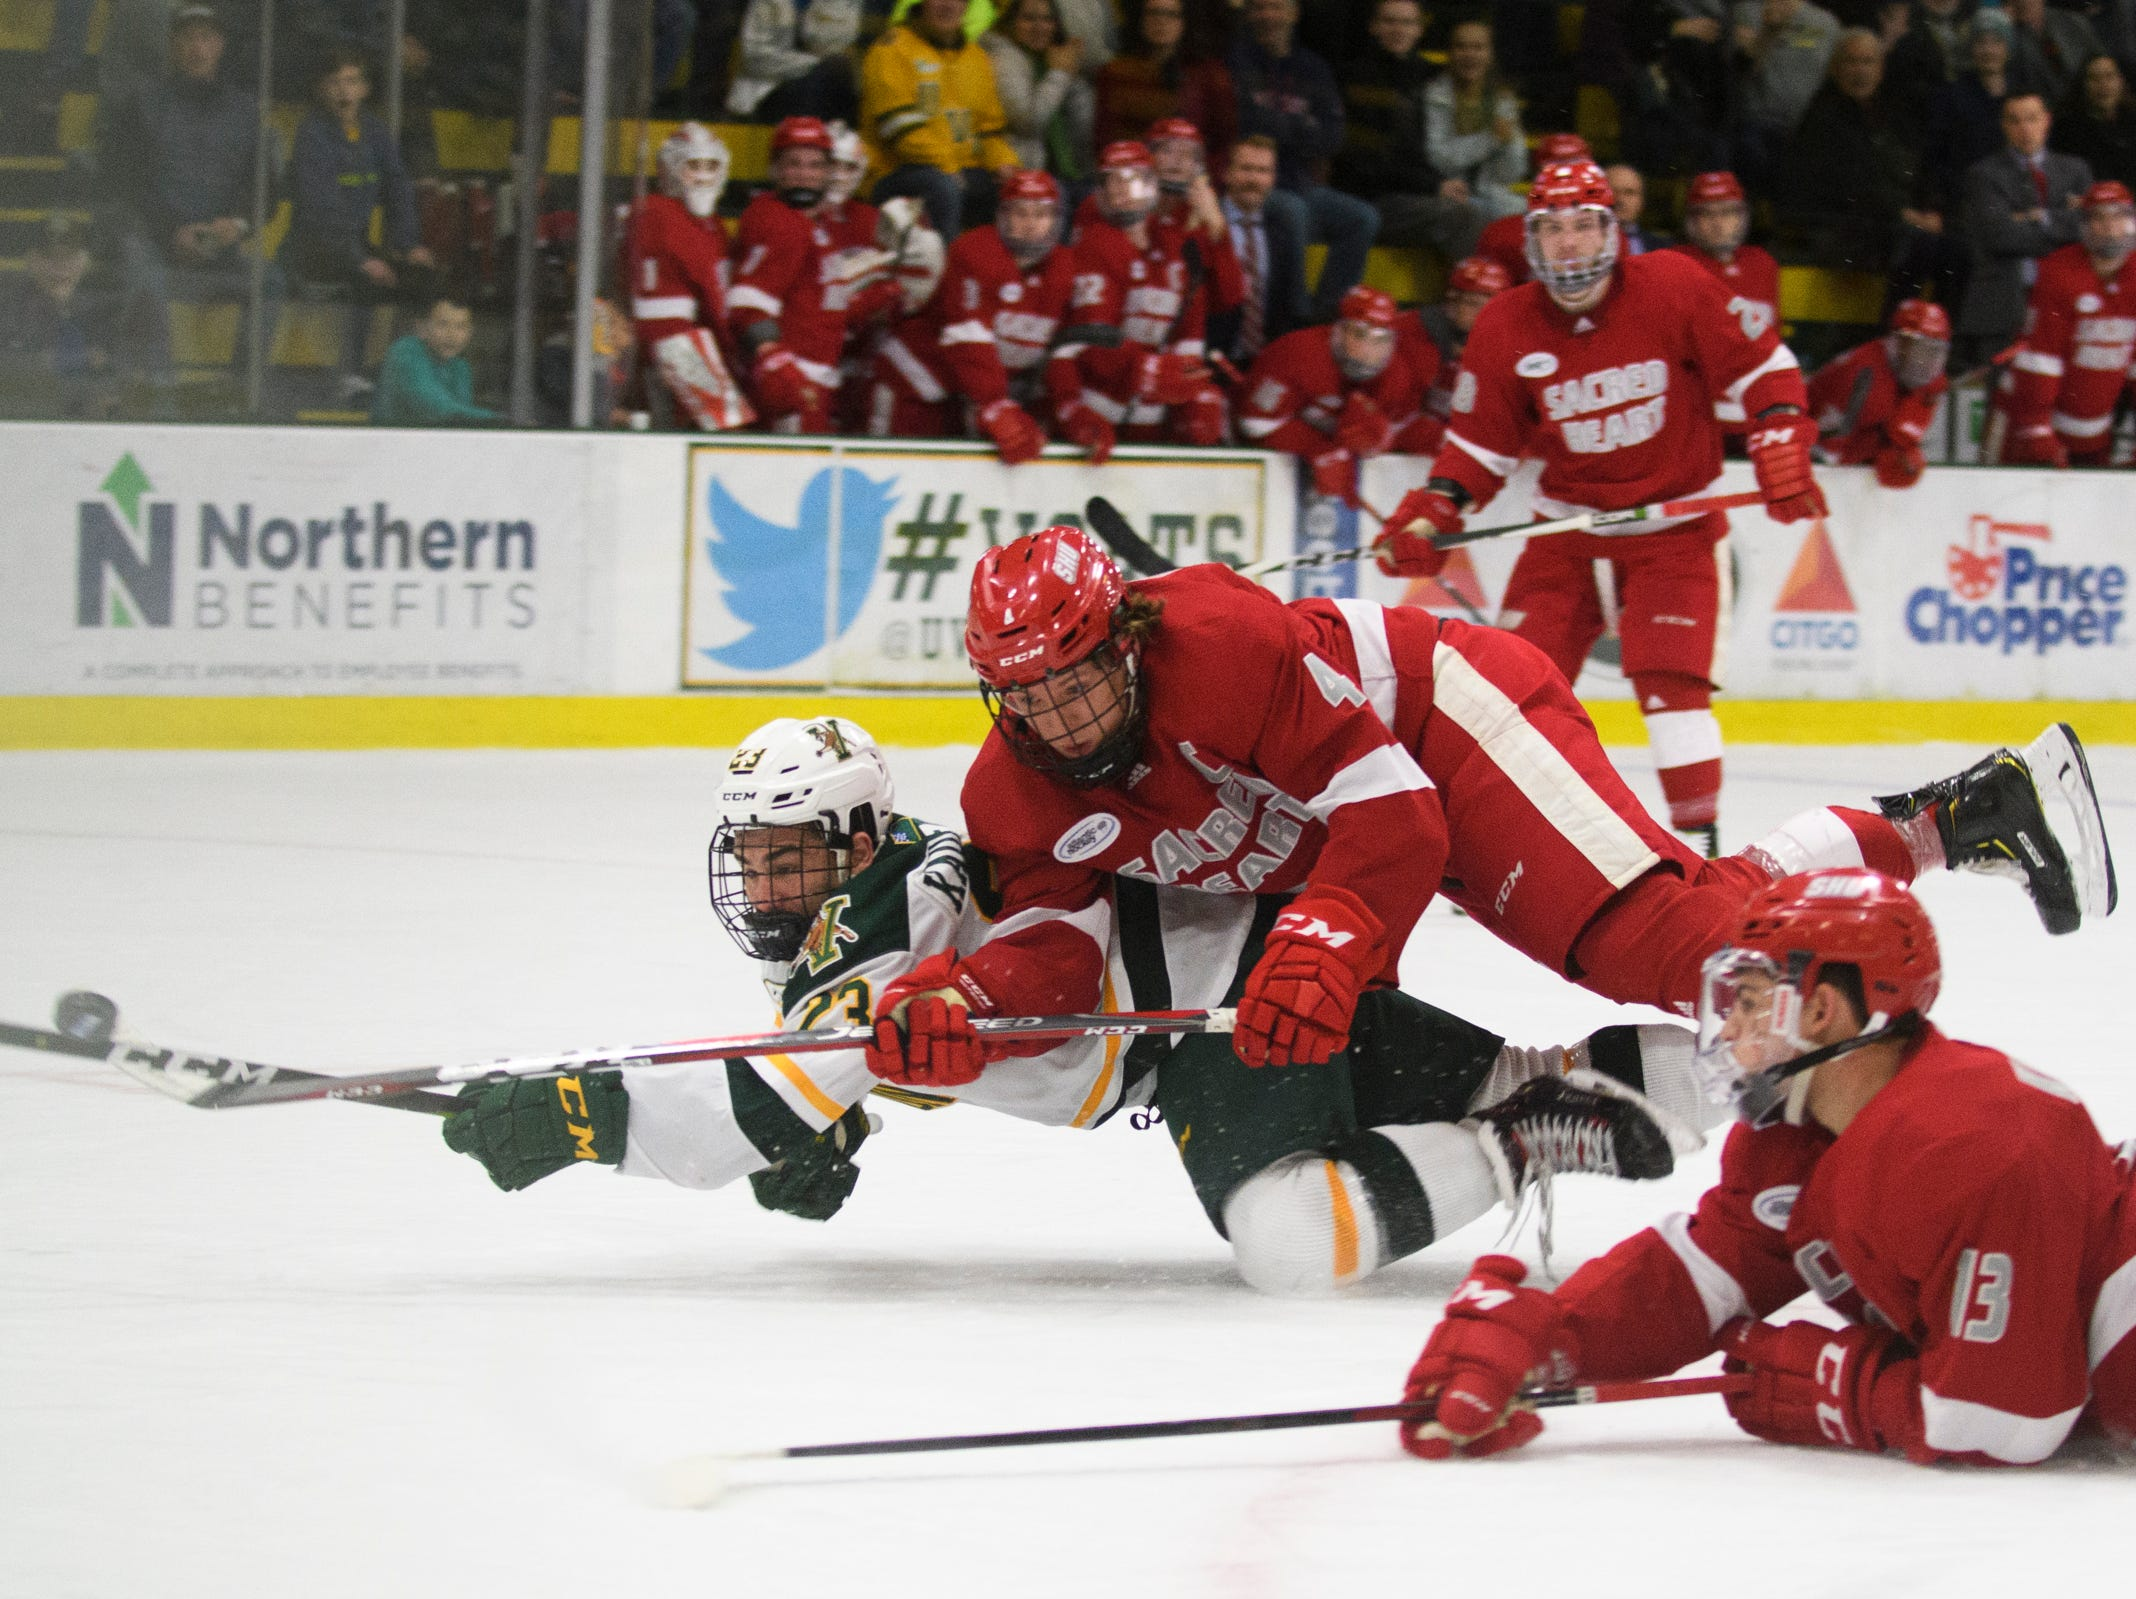 Vermont forward Max Kaufman (23) battles for the puck with Sacred Heart's Liam Clare (4) and Jordan Kaplan (13) during the men's hockey game between the Sacred Heart Pioneers and the Vermont Catamounts at Gutterson Field House on Friday night January 4, 2019 in Burlington.